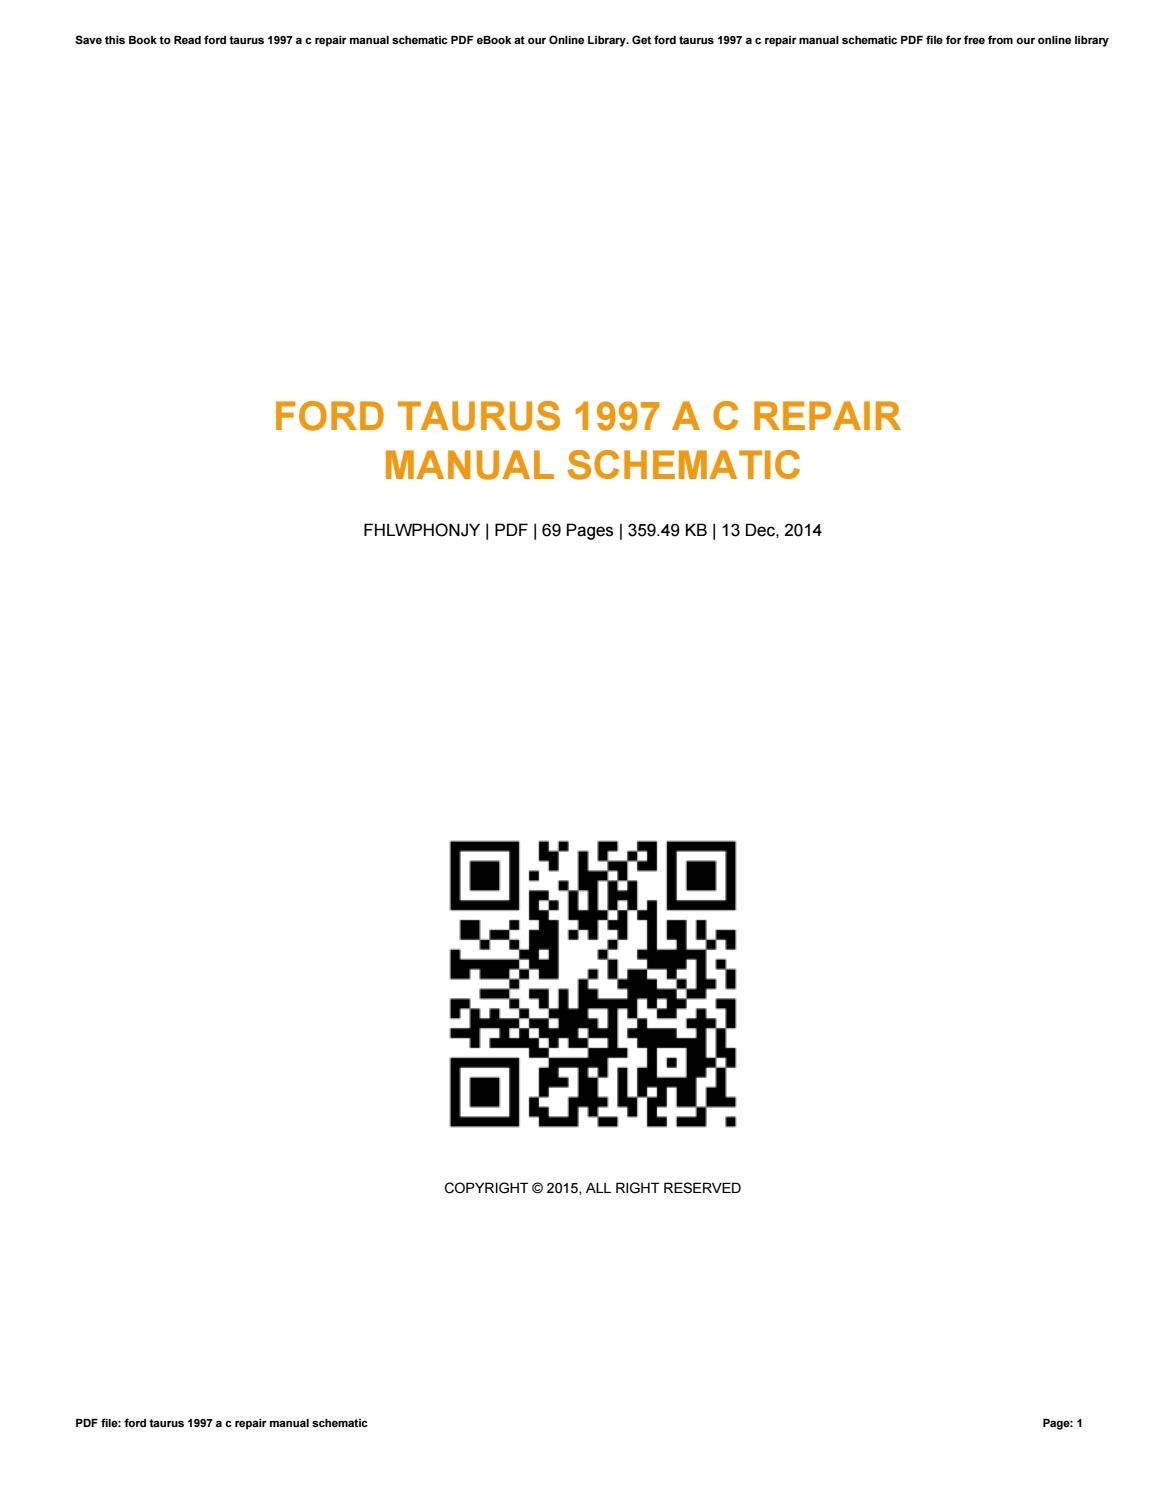 ford taurus 1997 a c repair manual schematic by marycarr4550 issuu rh issuu com 1997 ford taurus repair manual free online 97 Ford Taurus Wiring Diagram